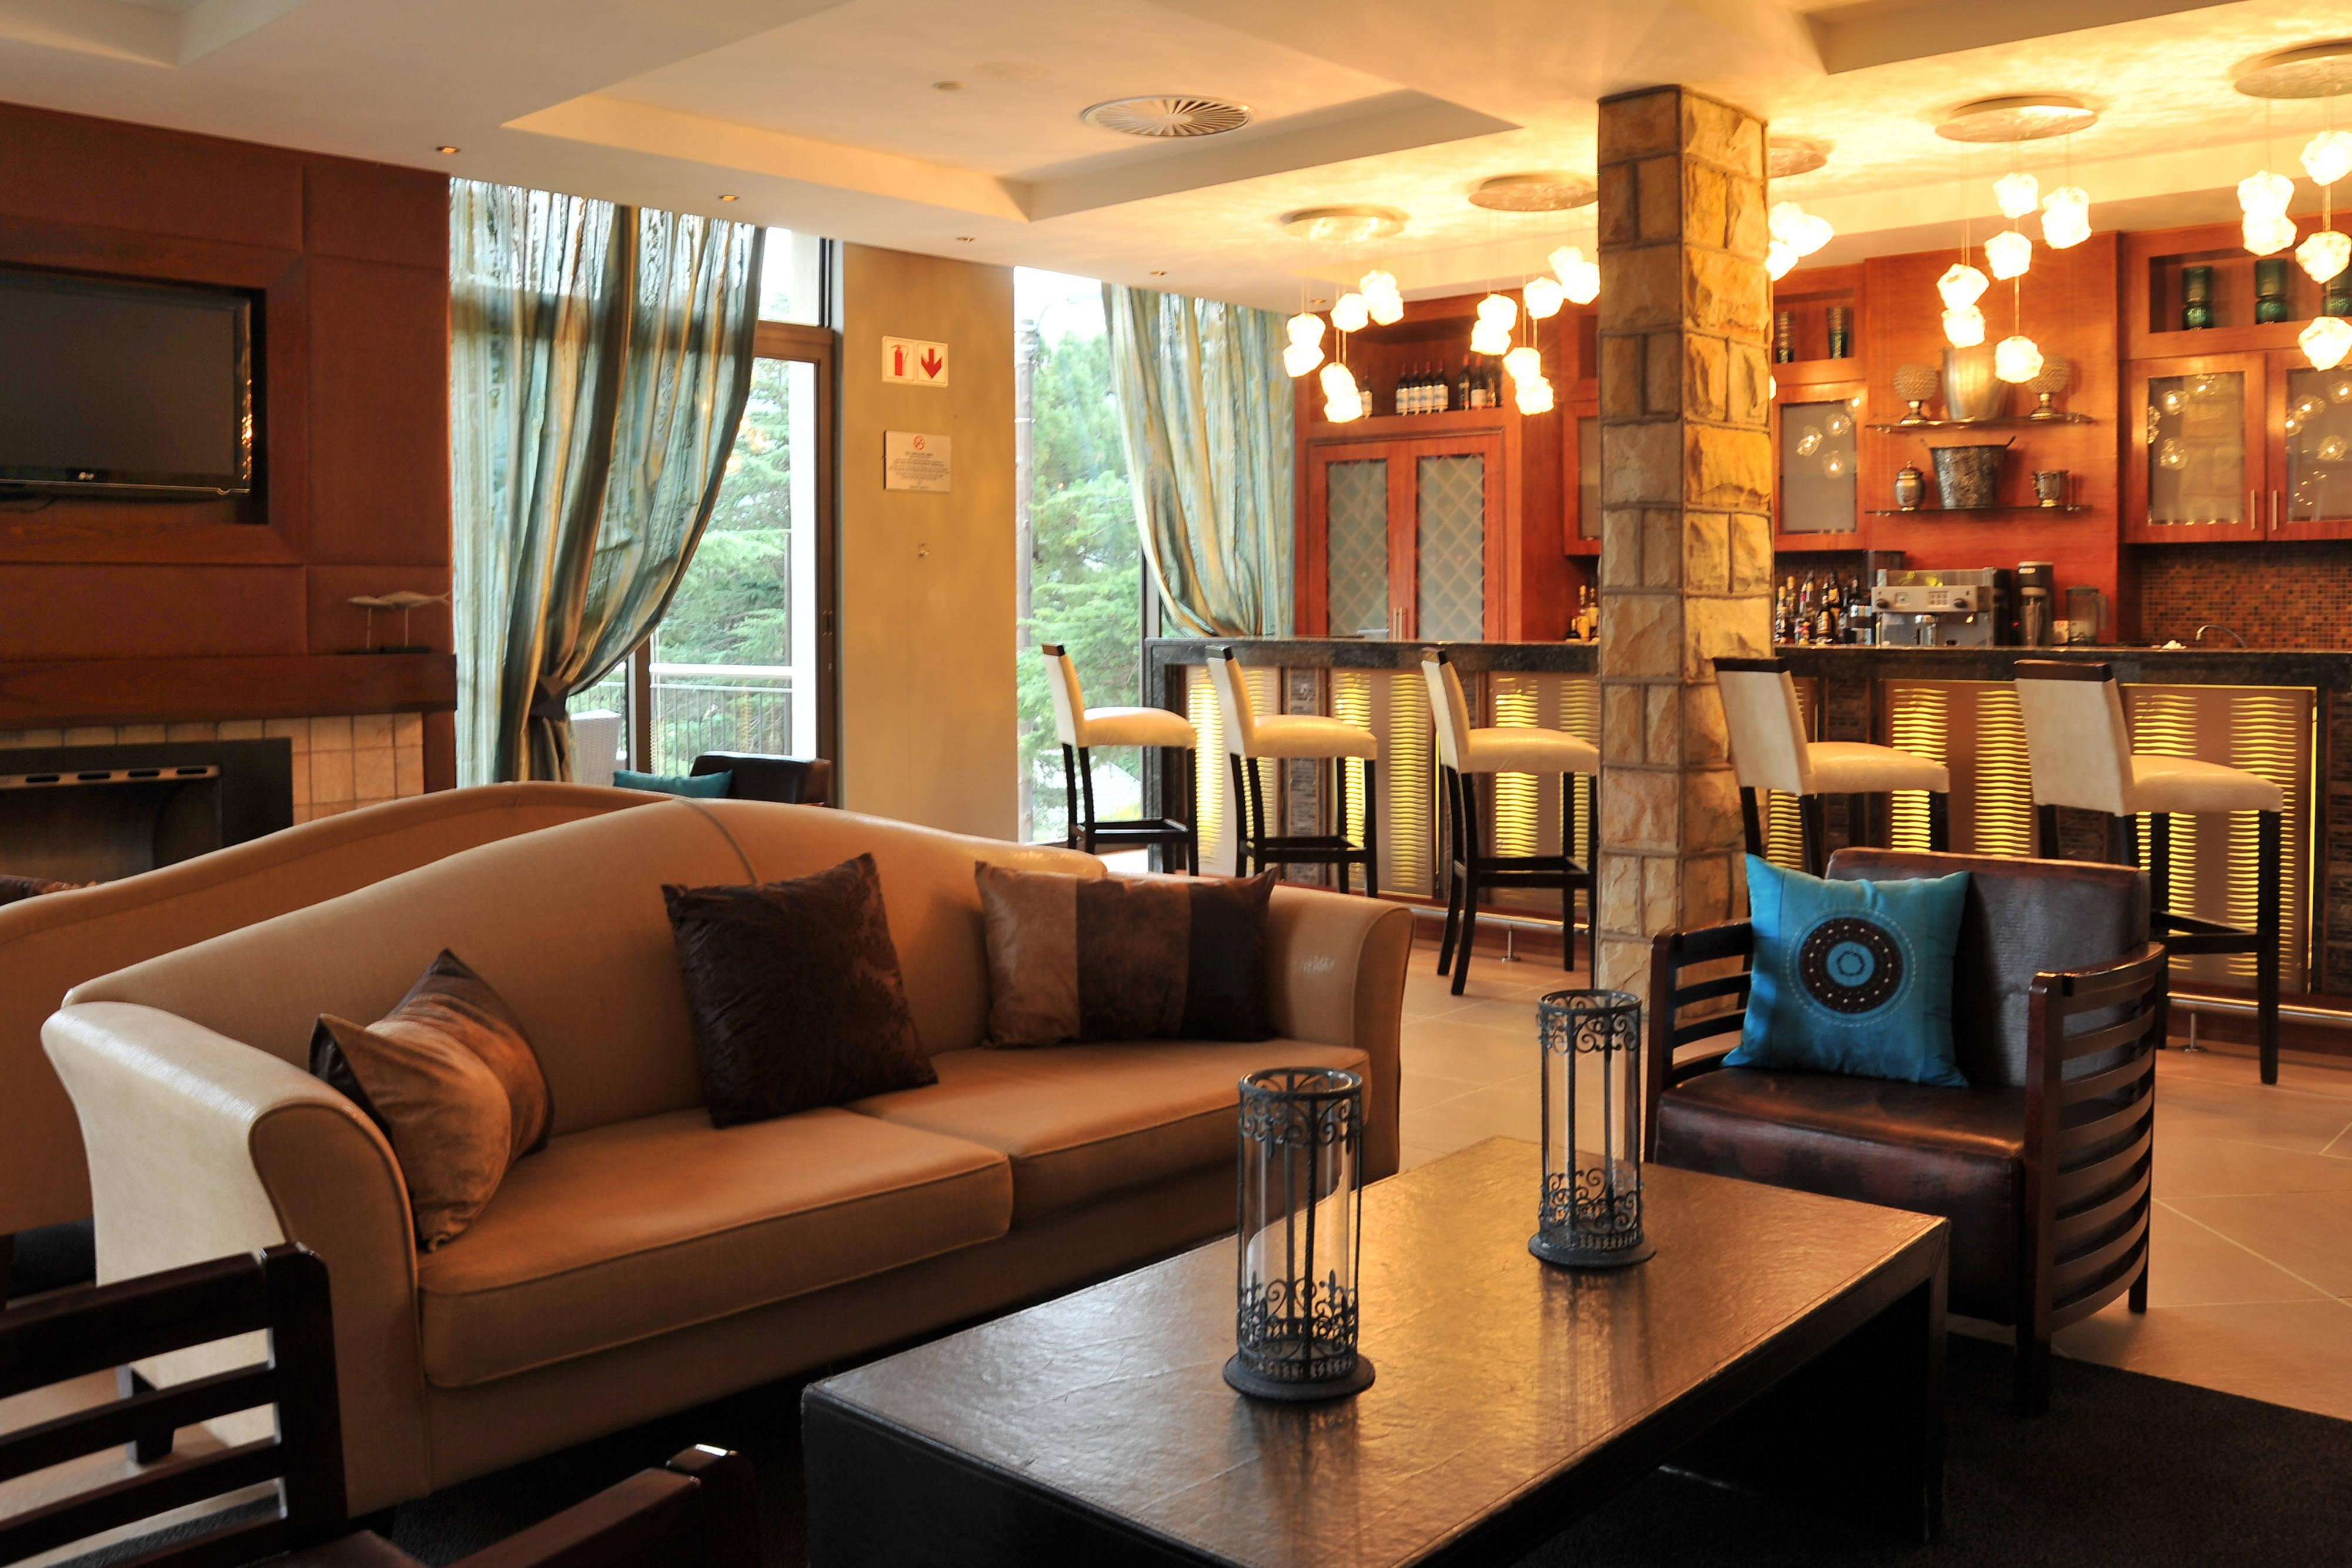 Hotel Bar and lounge area